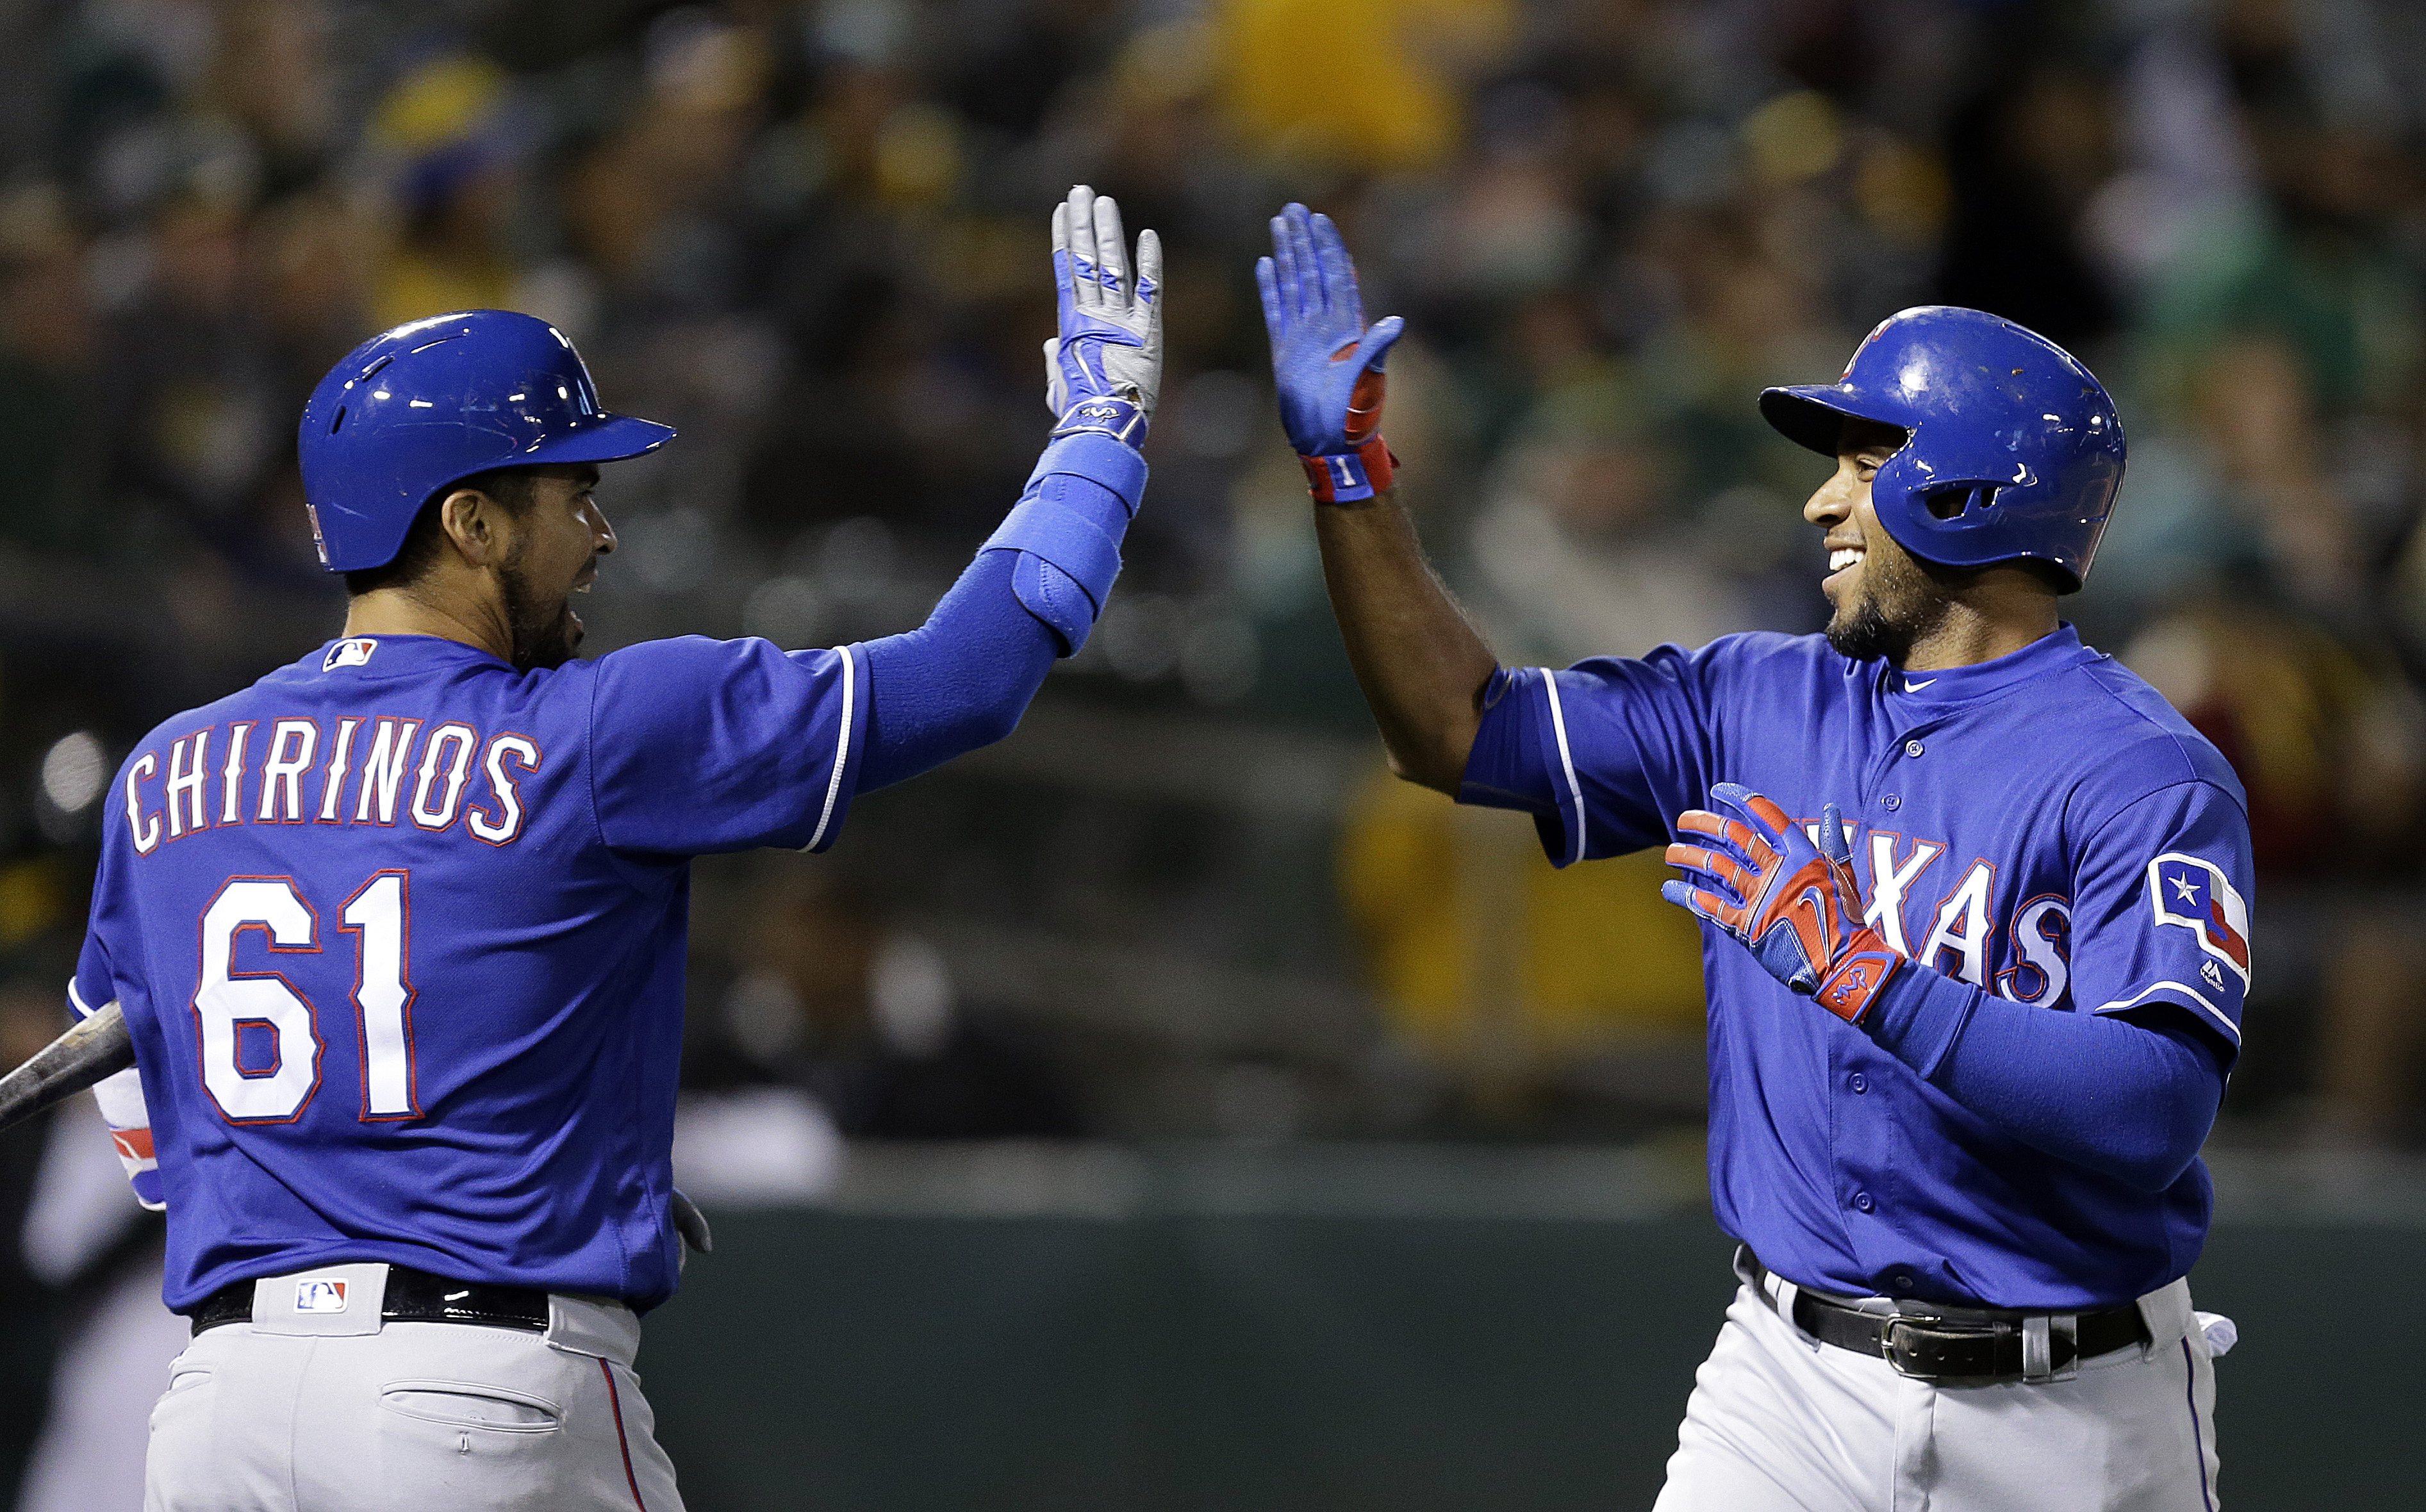 Texas Rangers' Elvis Andrus, right, celebrates with Robinson Chirinos (61) after hitting a home run against the Oakland Athletics during the eighth inning of a baseball game Tuesday, June 14, 2016, in Oakland, Calif. (AP Photo/Ben Margot)